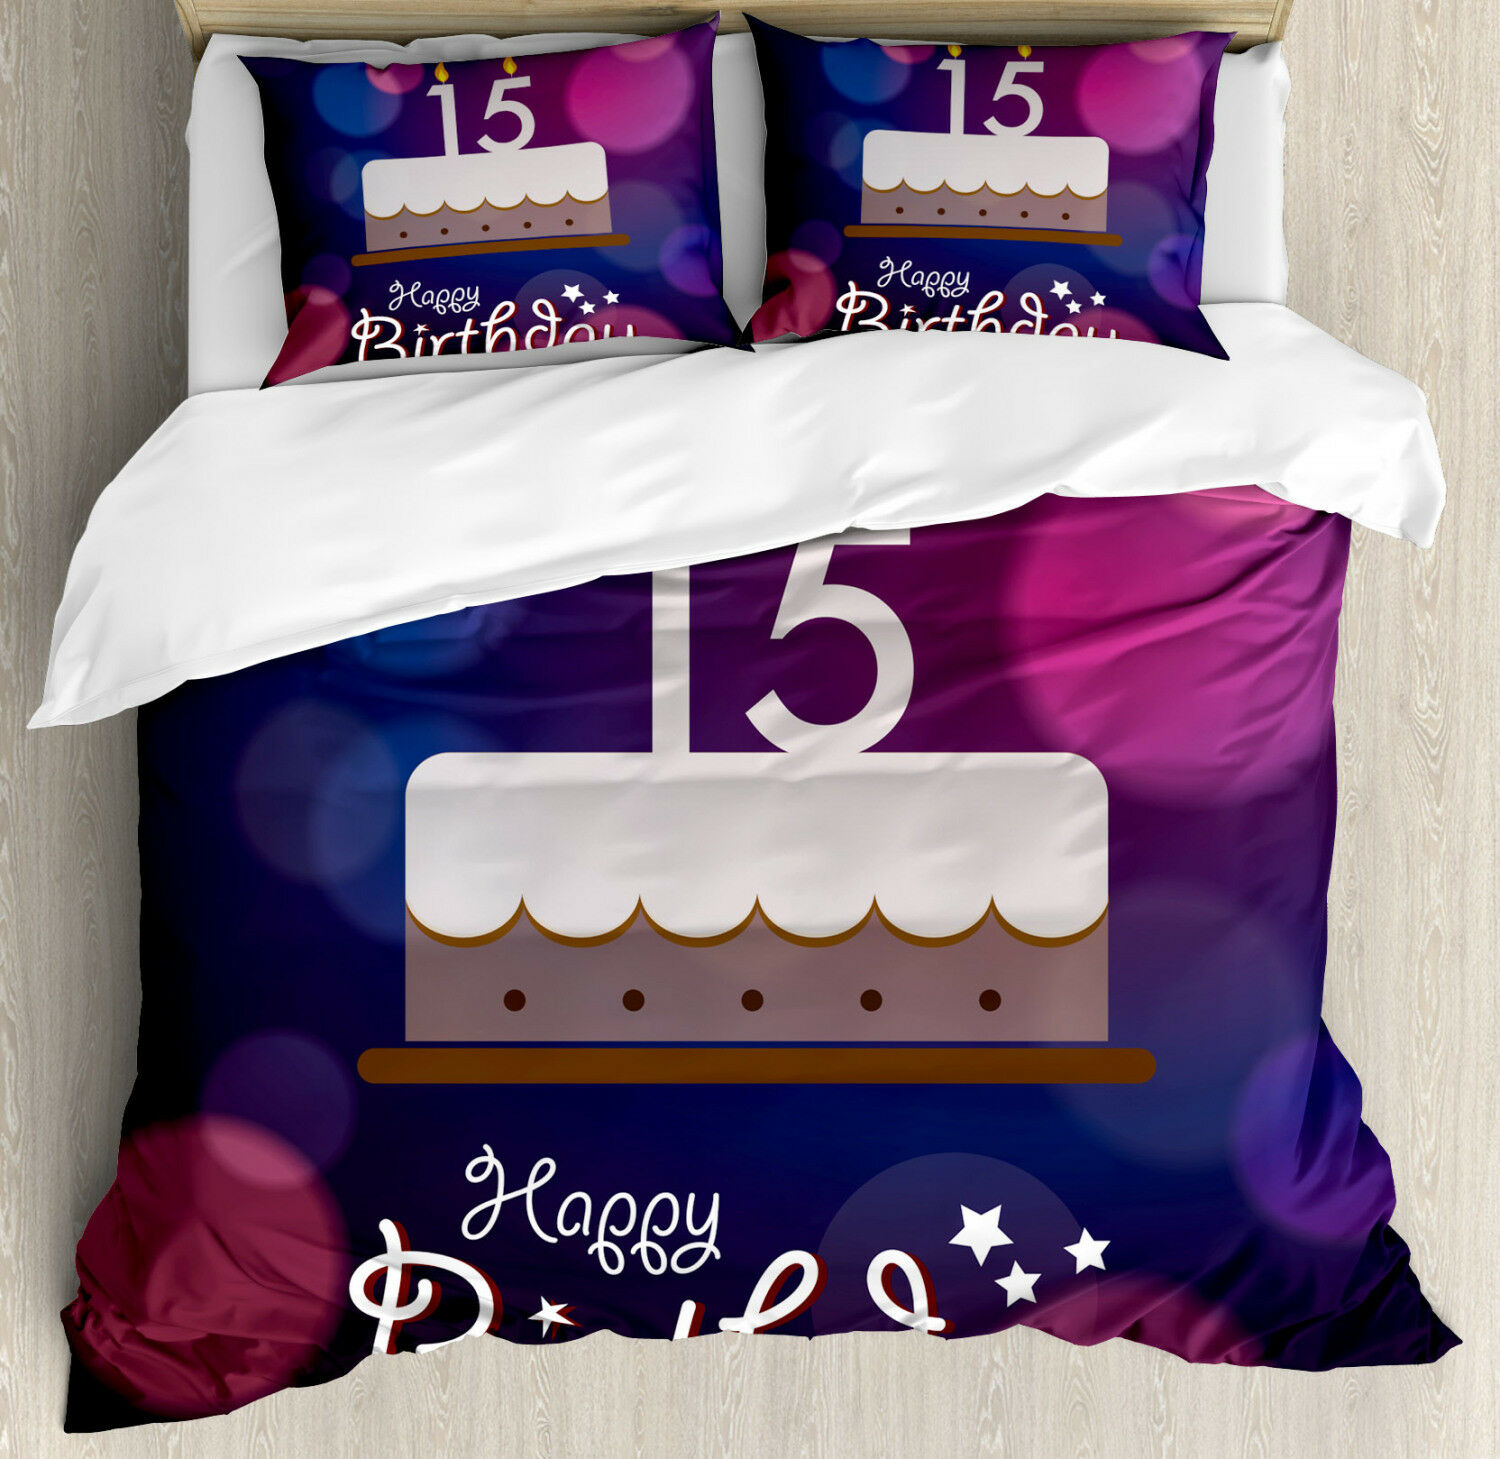 Abstract Duvet Cover Set with Pillow Shams Fifteen Birthday Cake Print